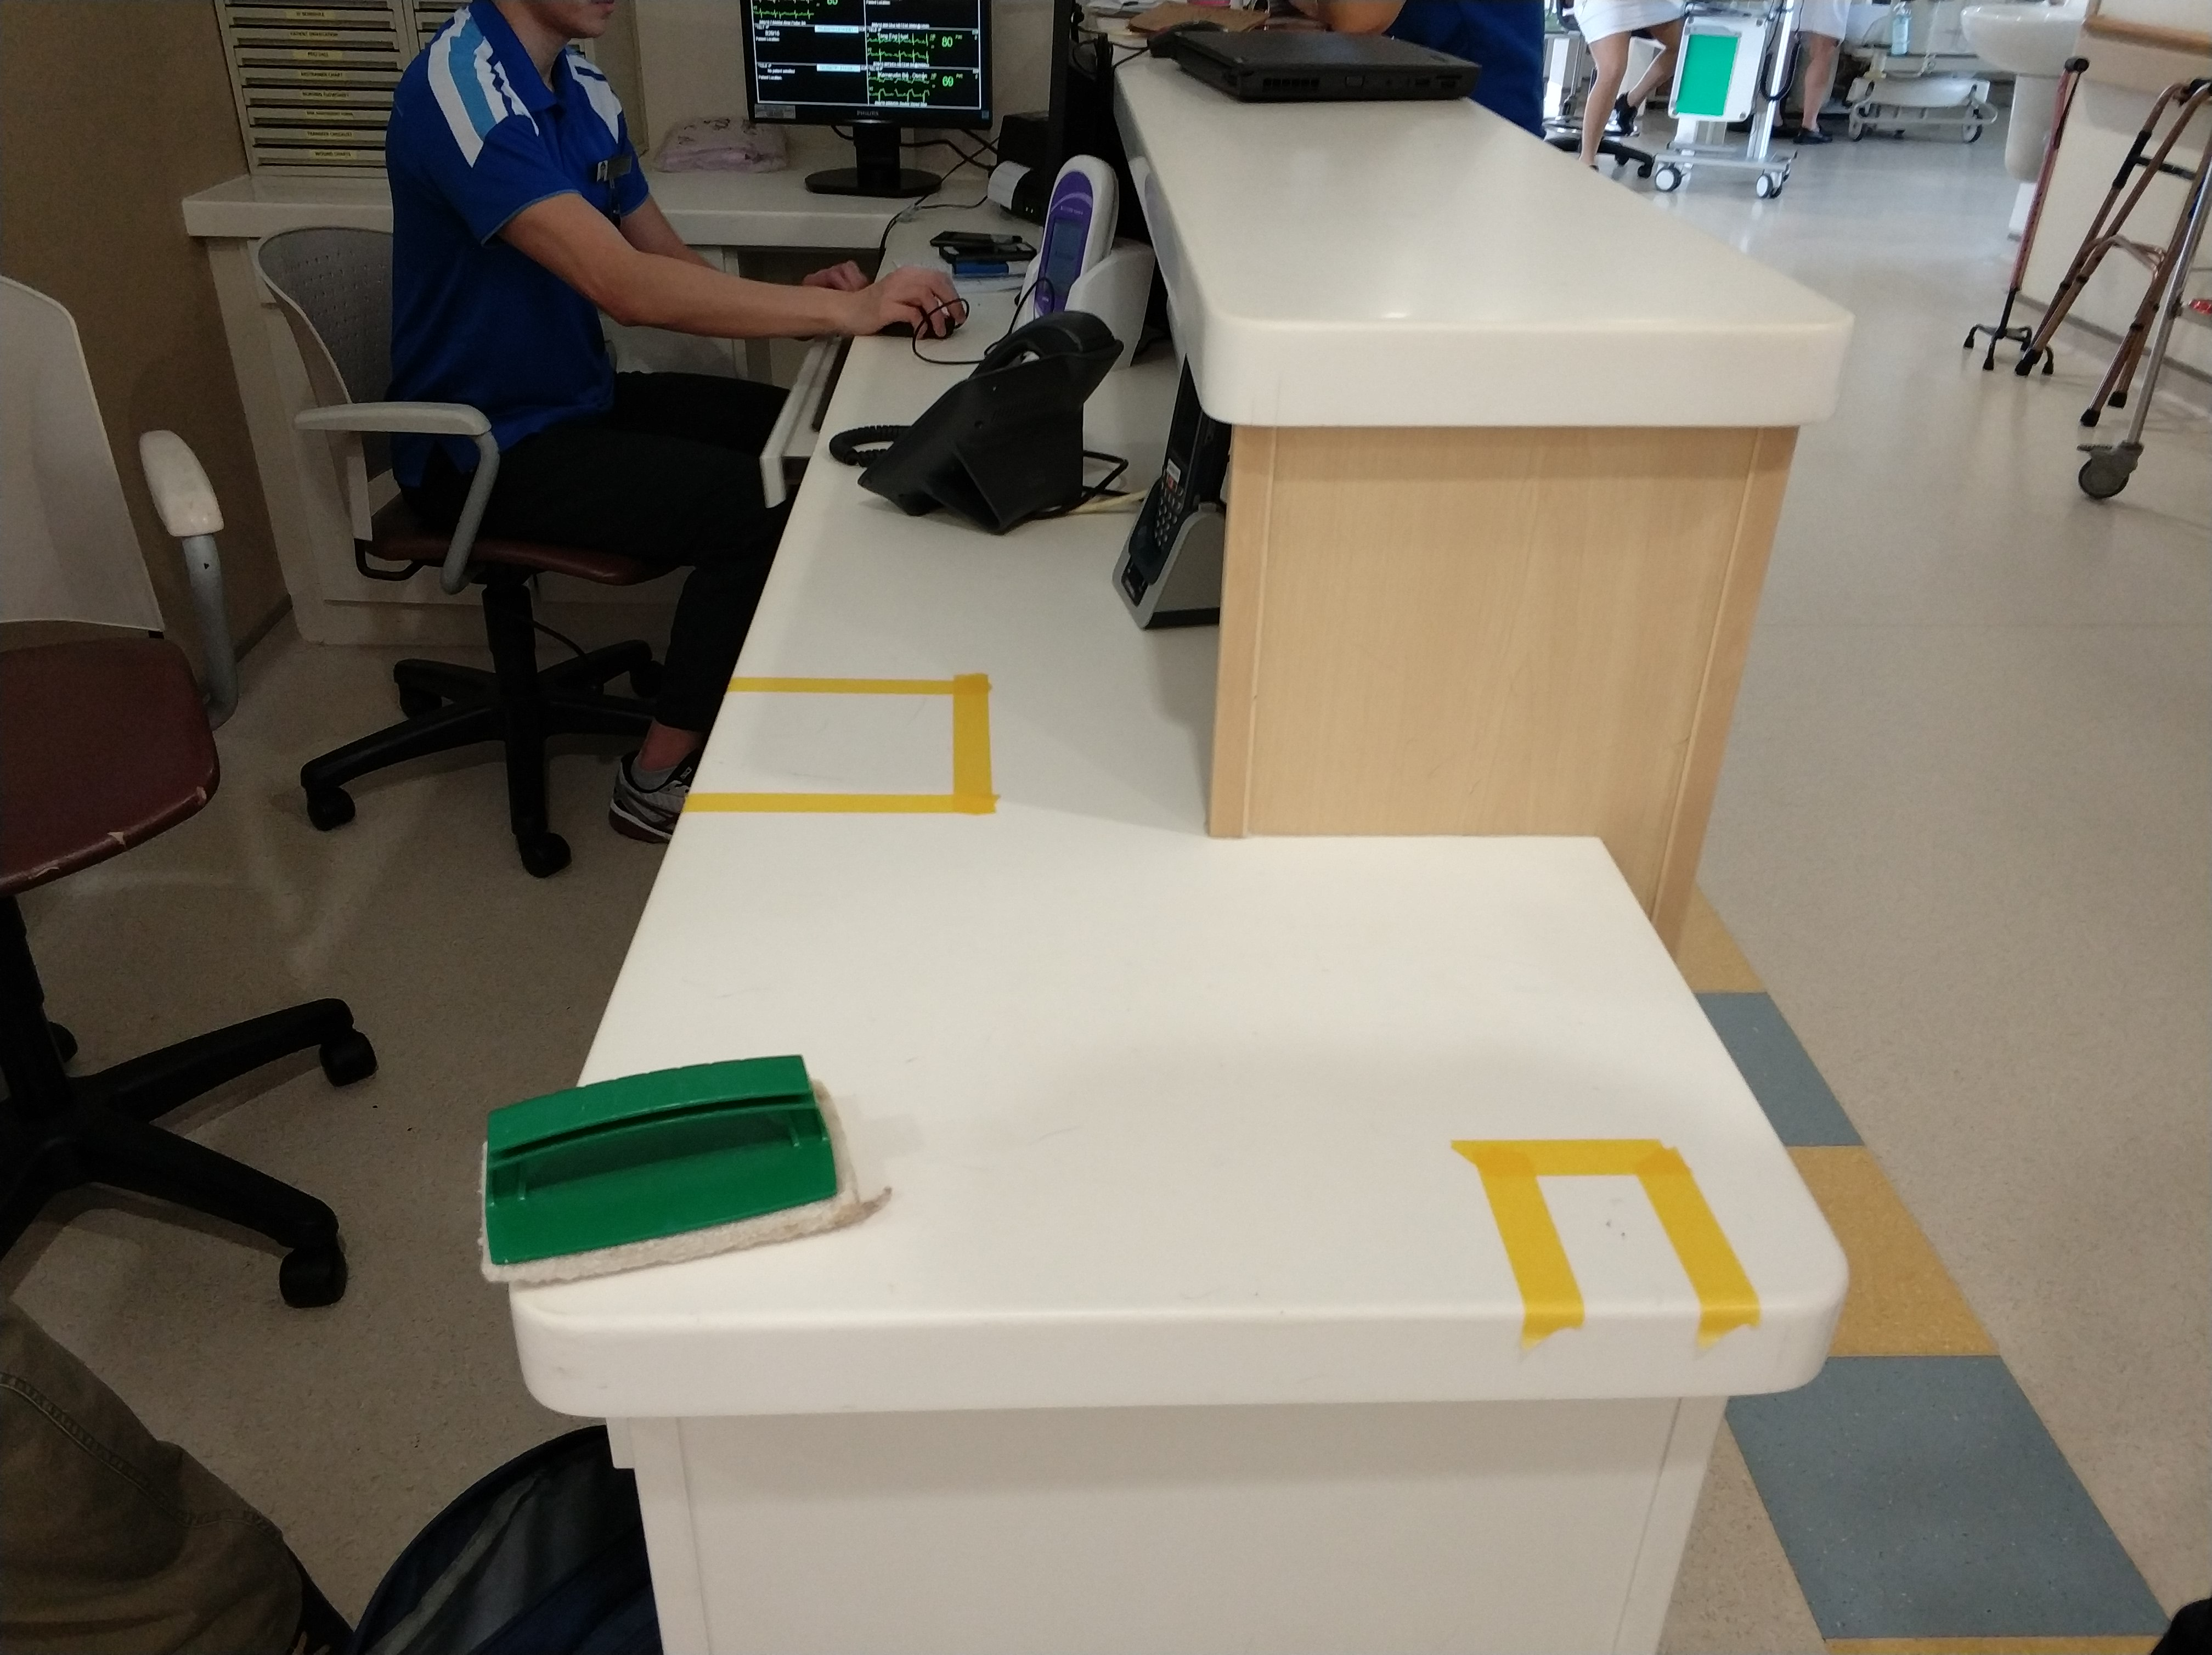 weFix SG project at Khoo Teck Puat Hospital cleaning hard to remove stain Nurse Station